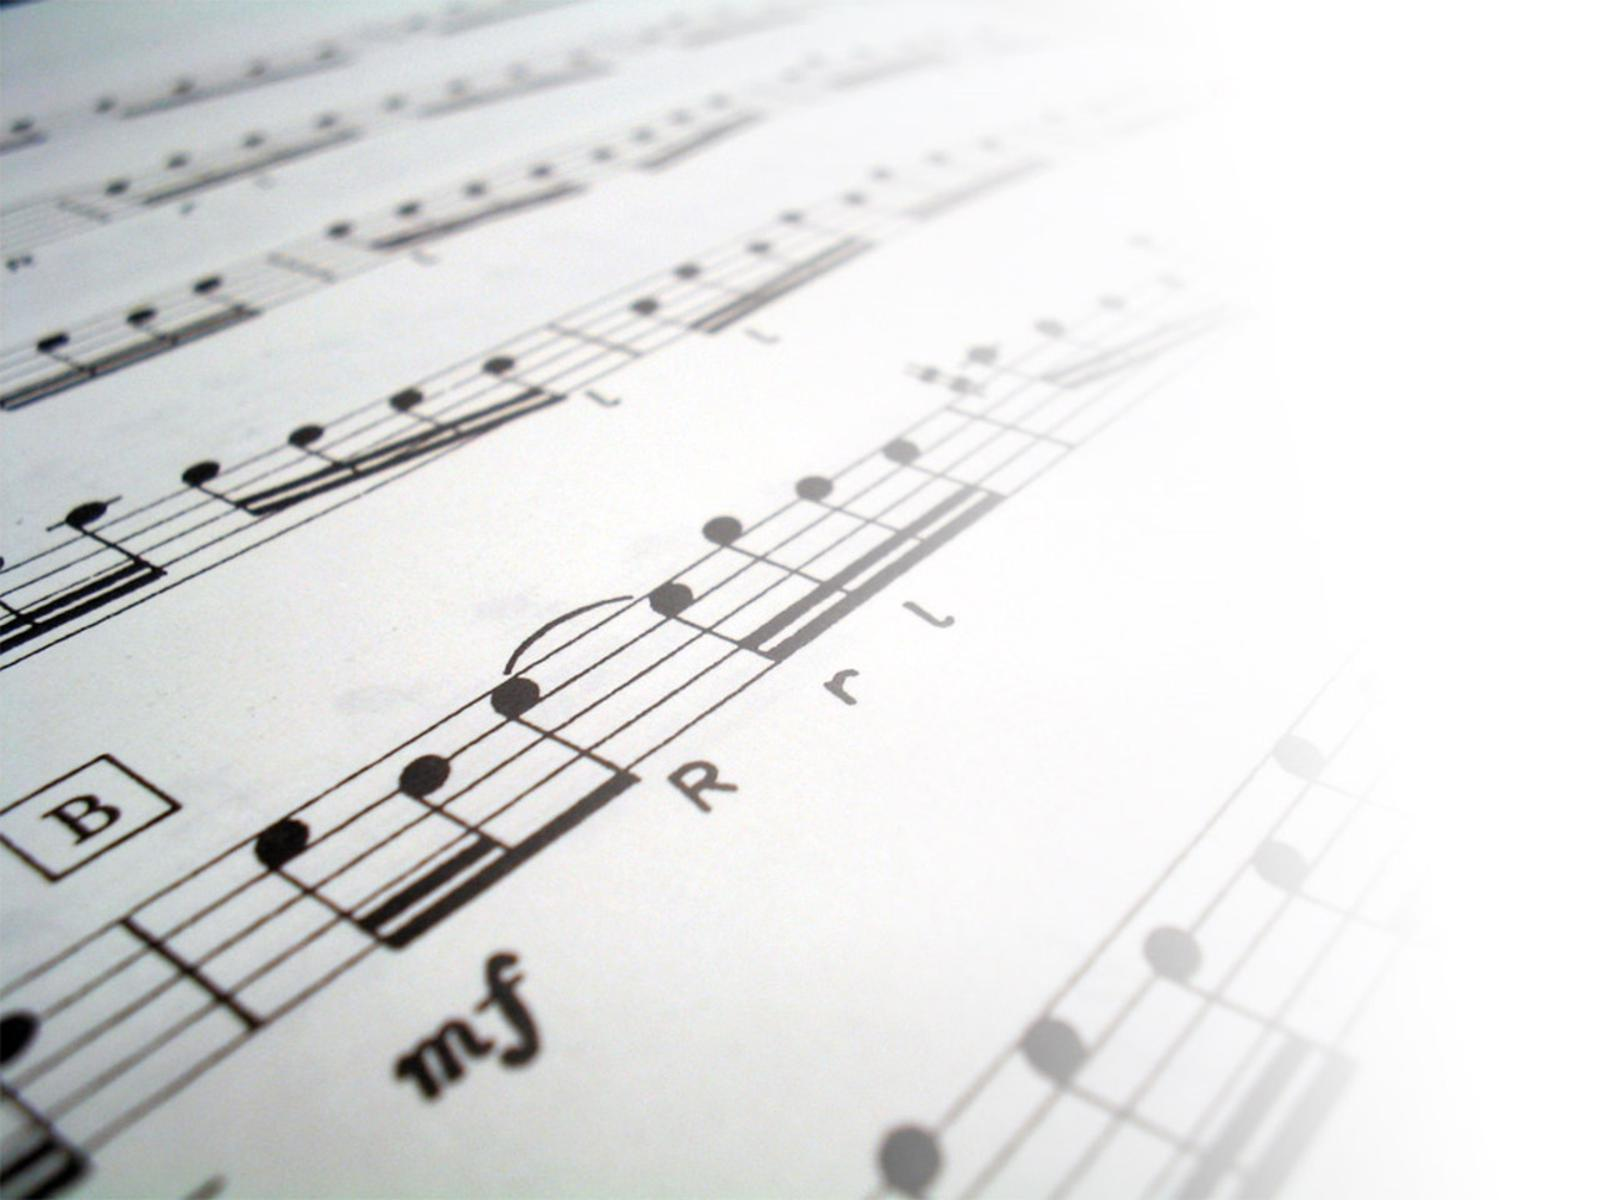 sheet music 2 wallpaper - photo #16